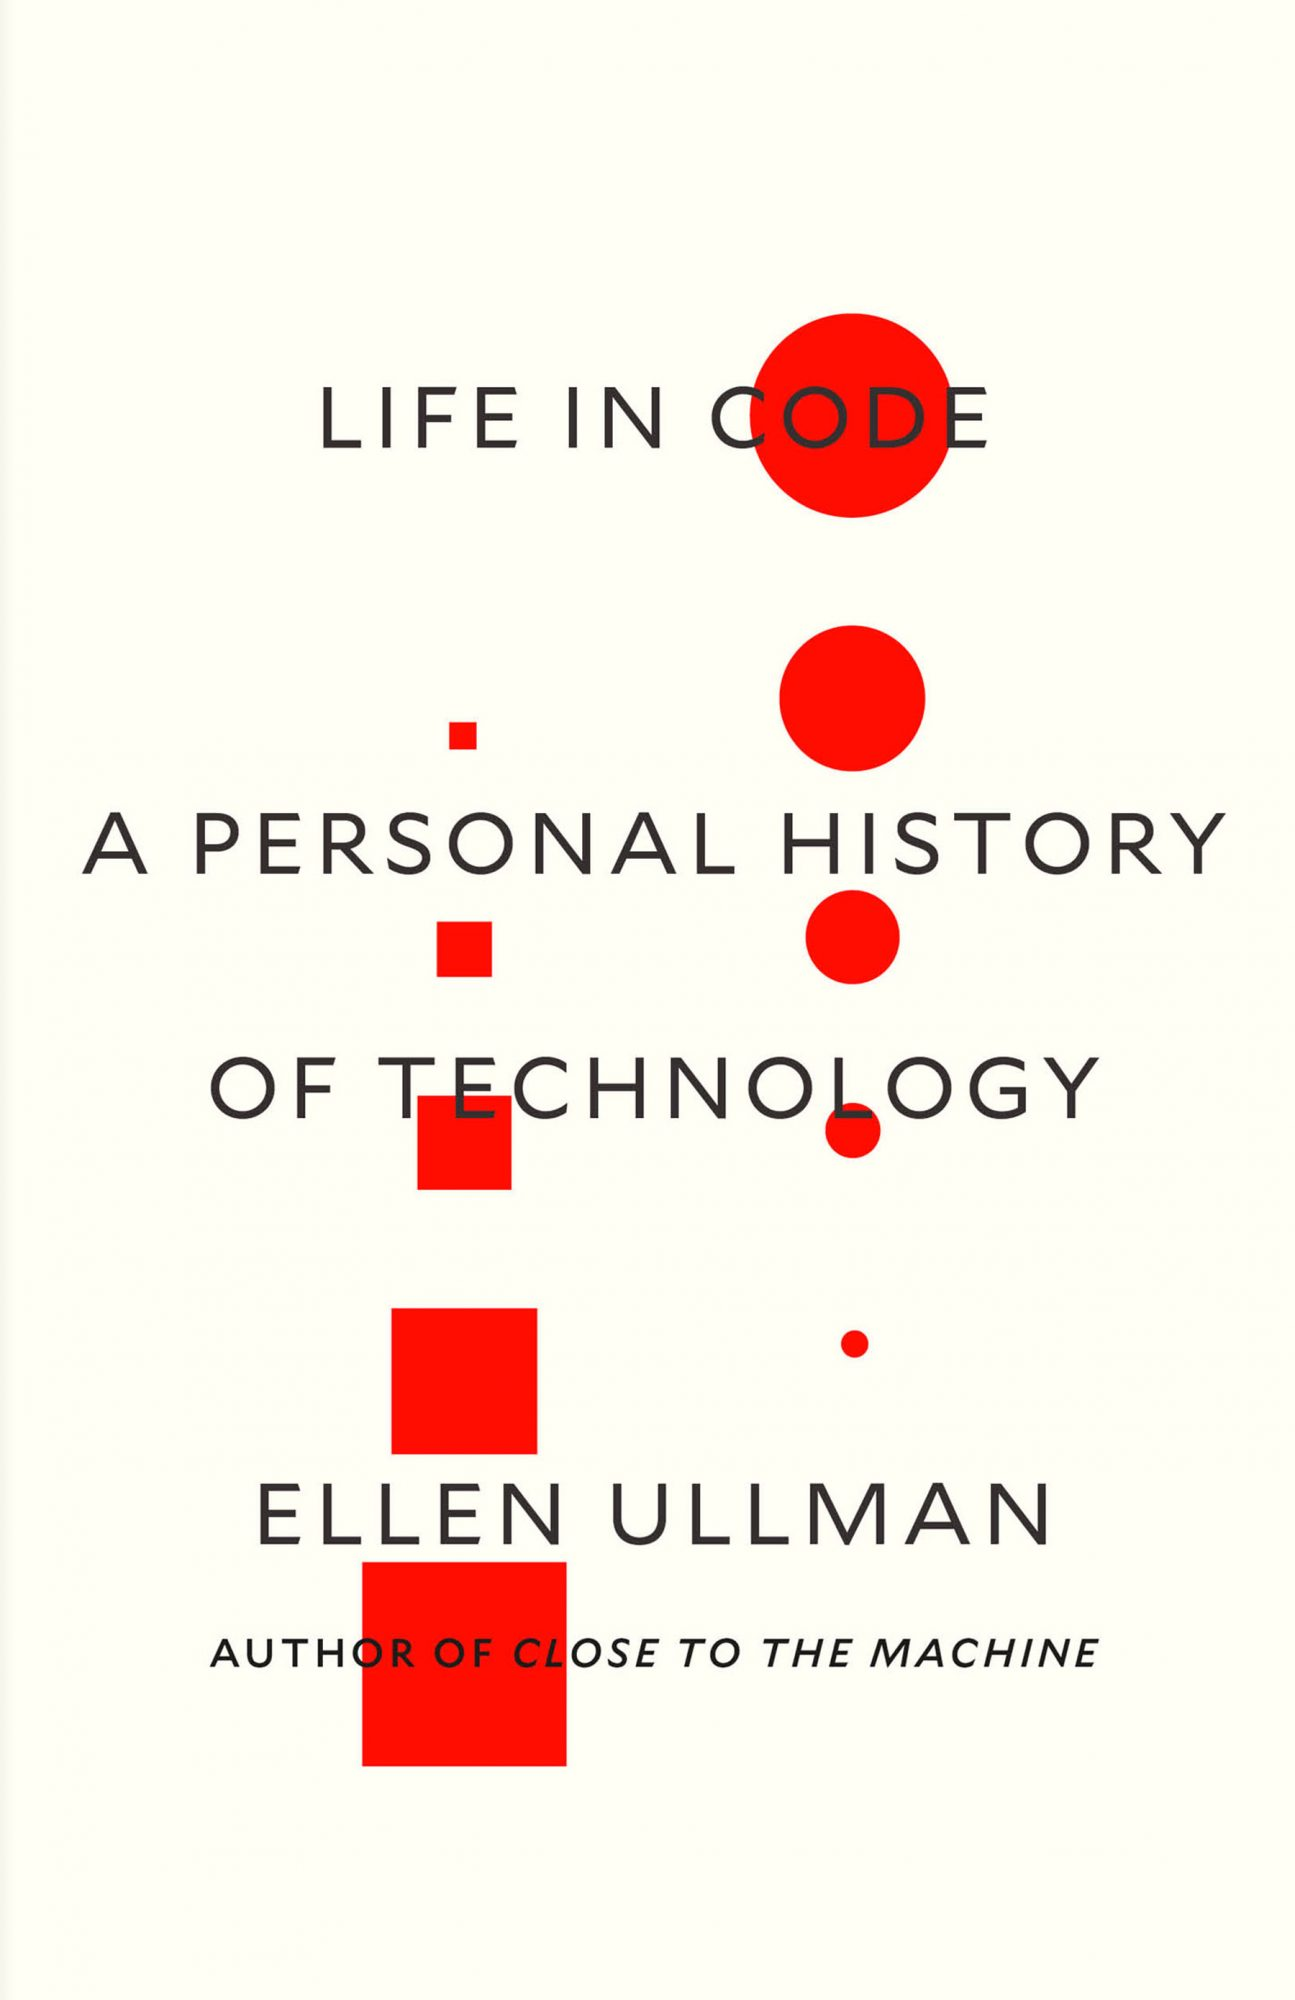 Life in Code: A Personal History of Technology (8/08/2017)by Ellen Ullman